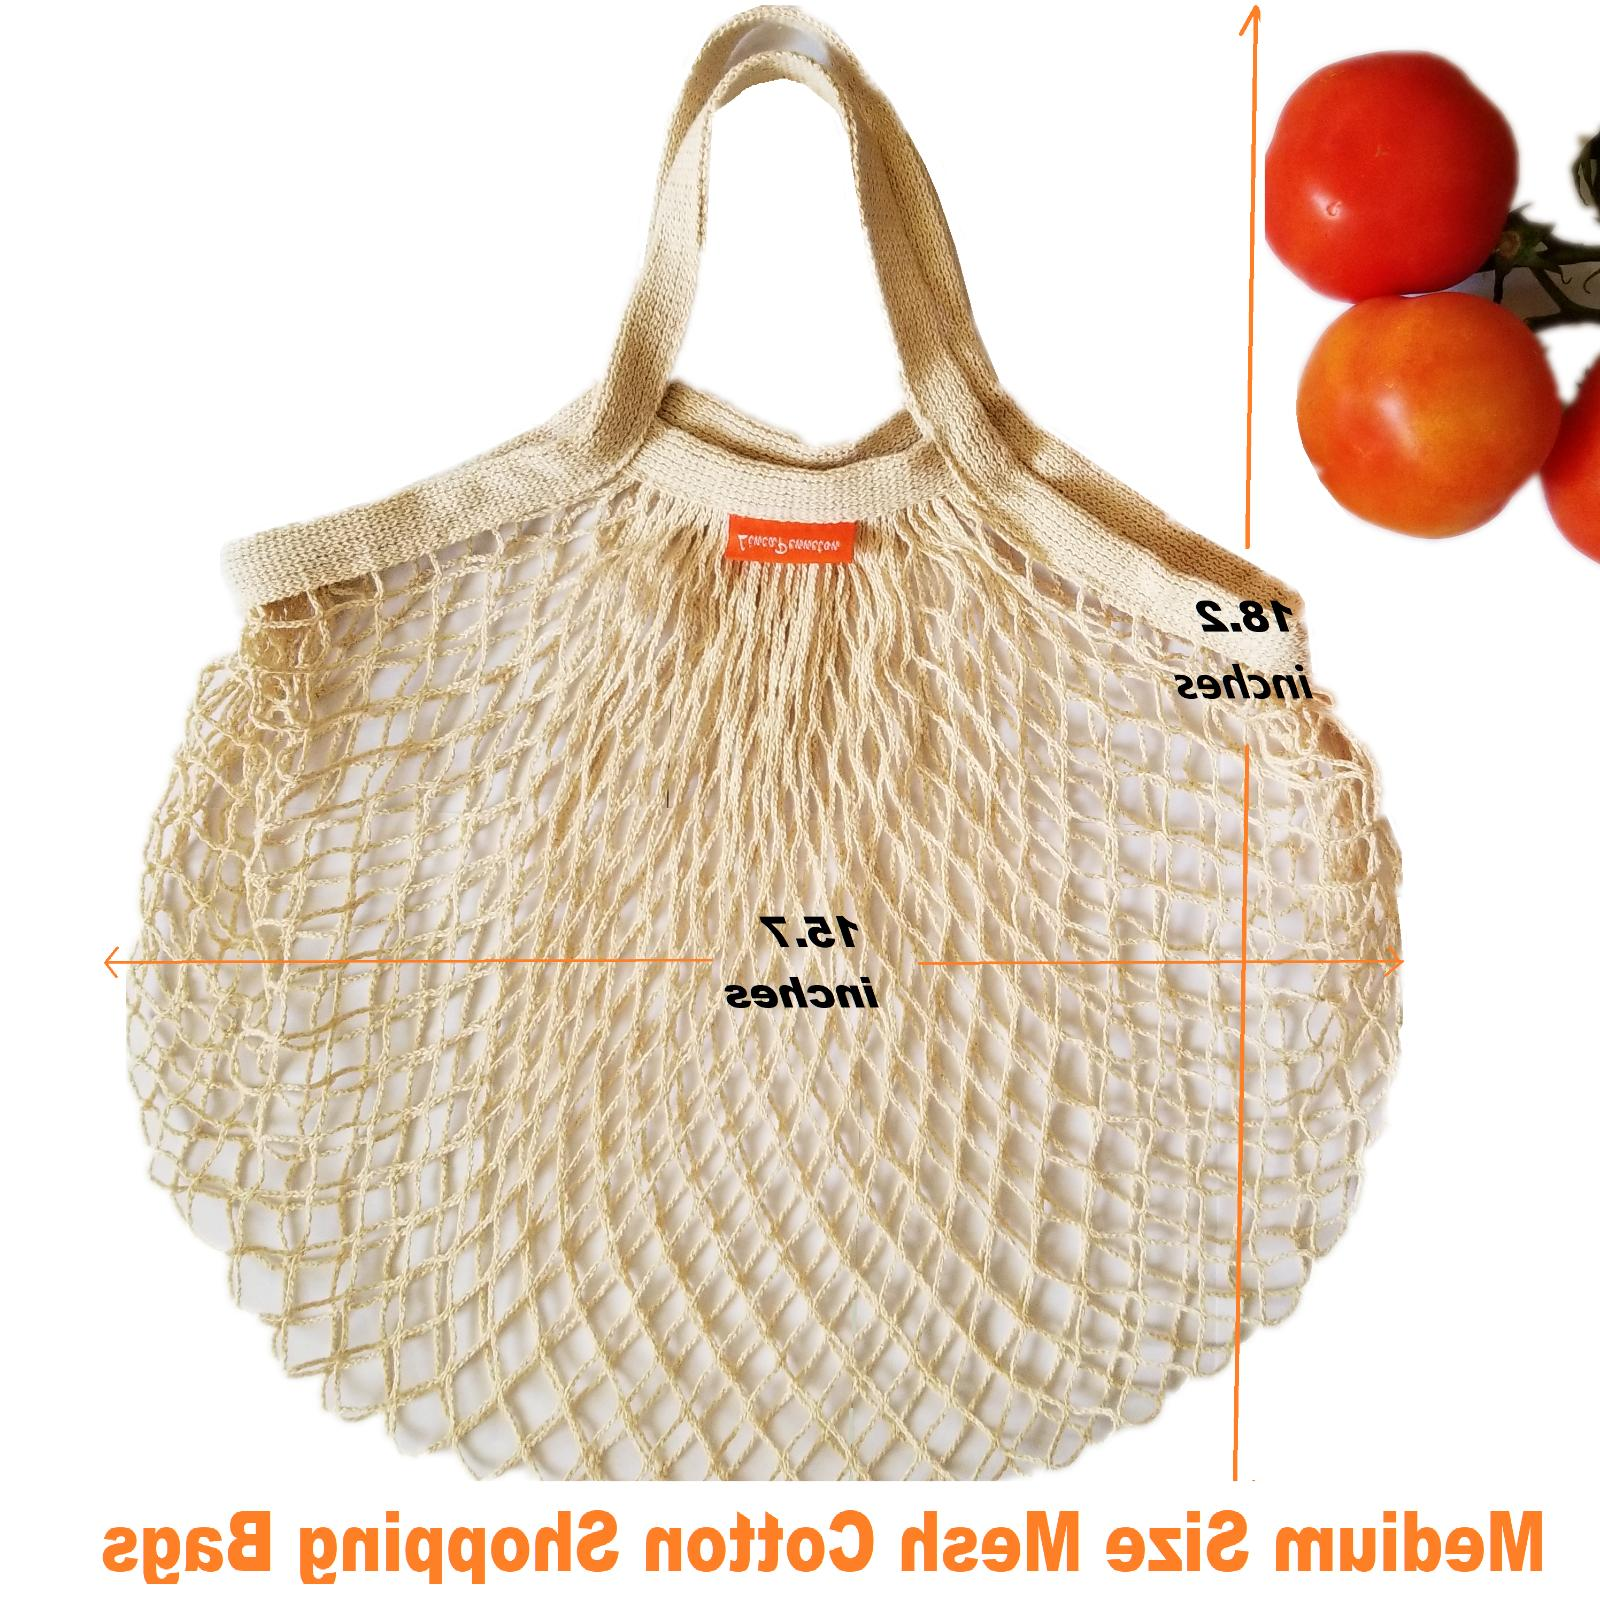 Reusable Mesh Bags Cotton Bags Shopping Bags